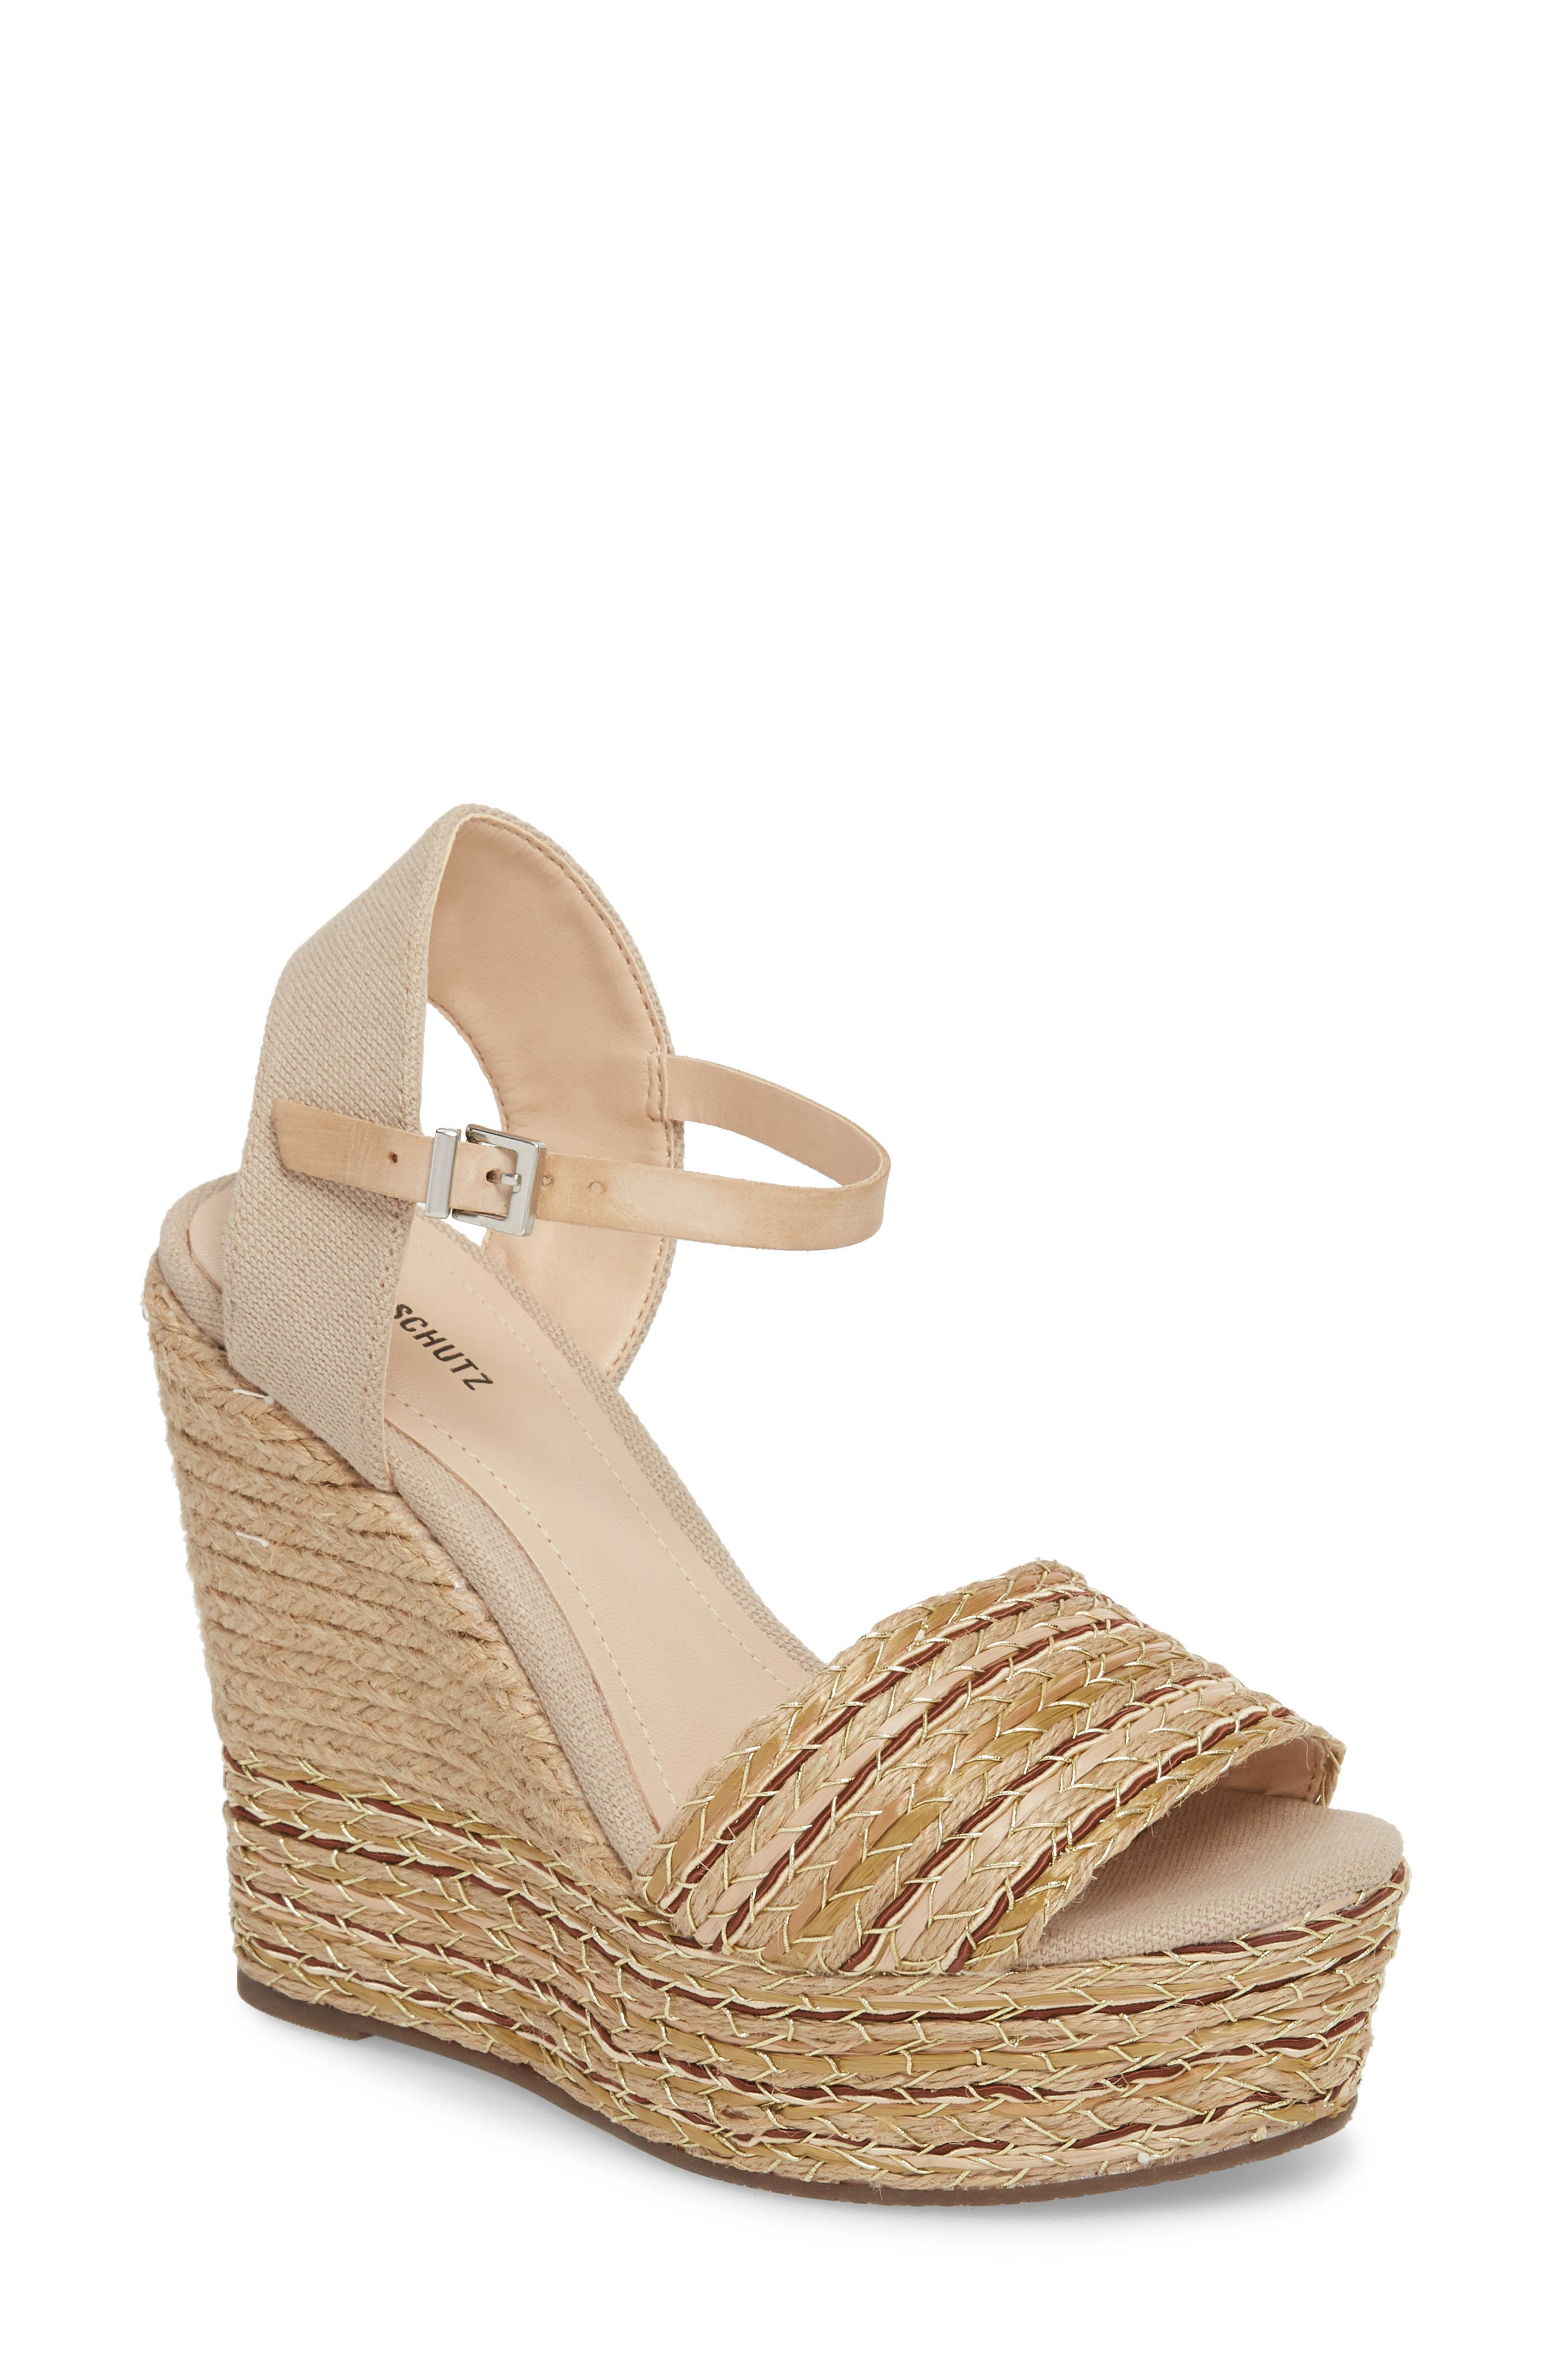 Rilark Platform Wedge Sandal,                         Main,                         color, Coco Fabric